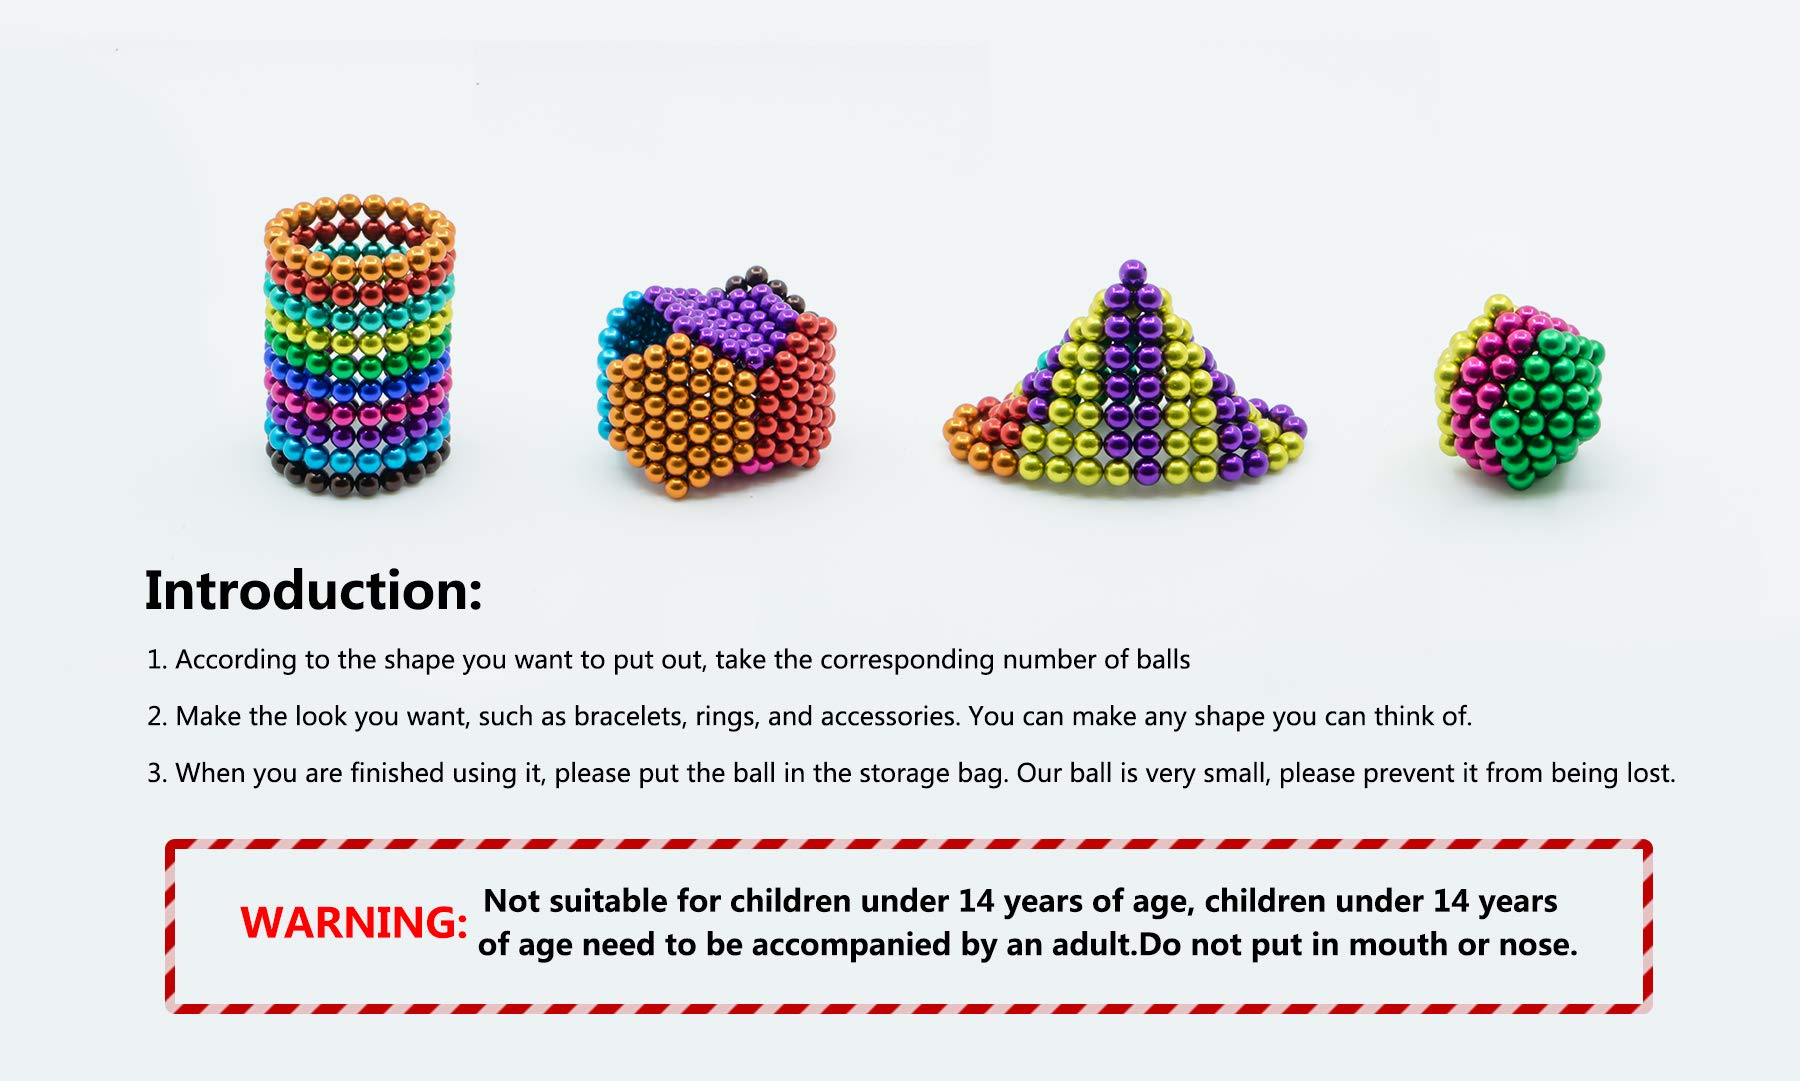 sunsoy 1000 Pieces 5mm Sculpture Building Blocks Toys for Intelligence Learning -Office Toy & Stress Relief for Adults Colorful by sunsoy (Image #7)